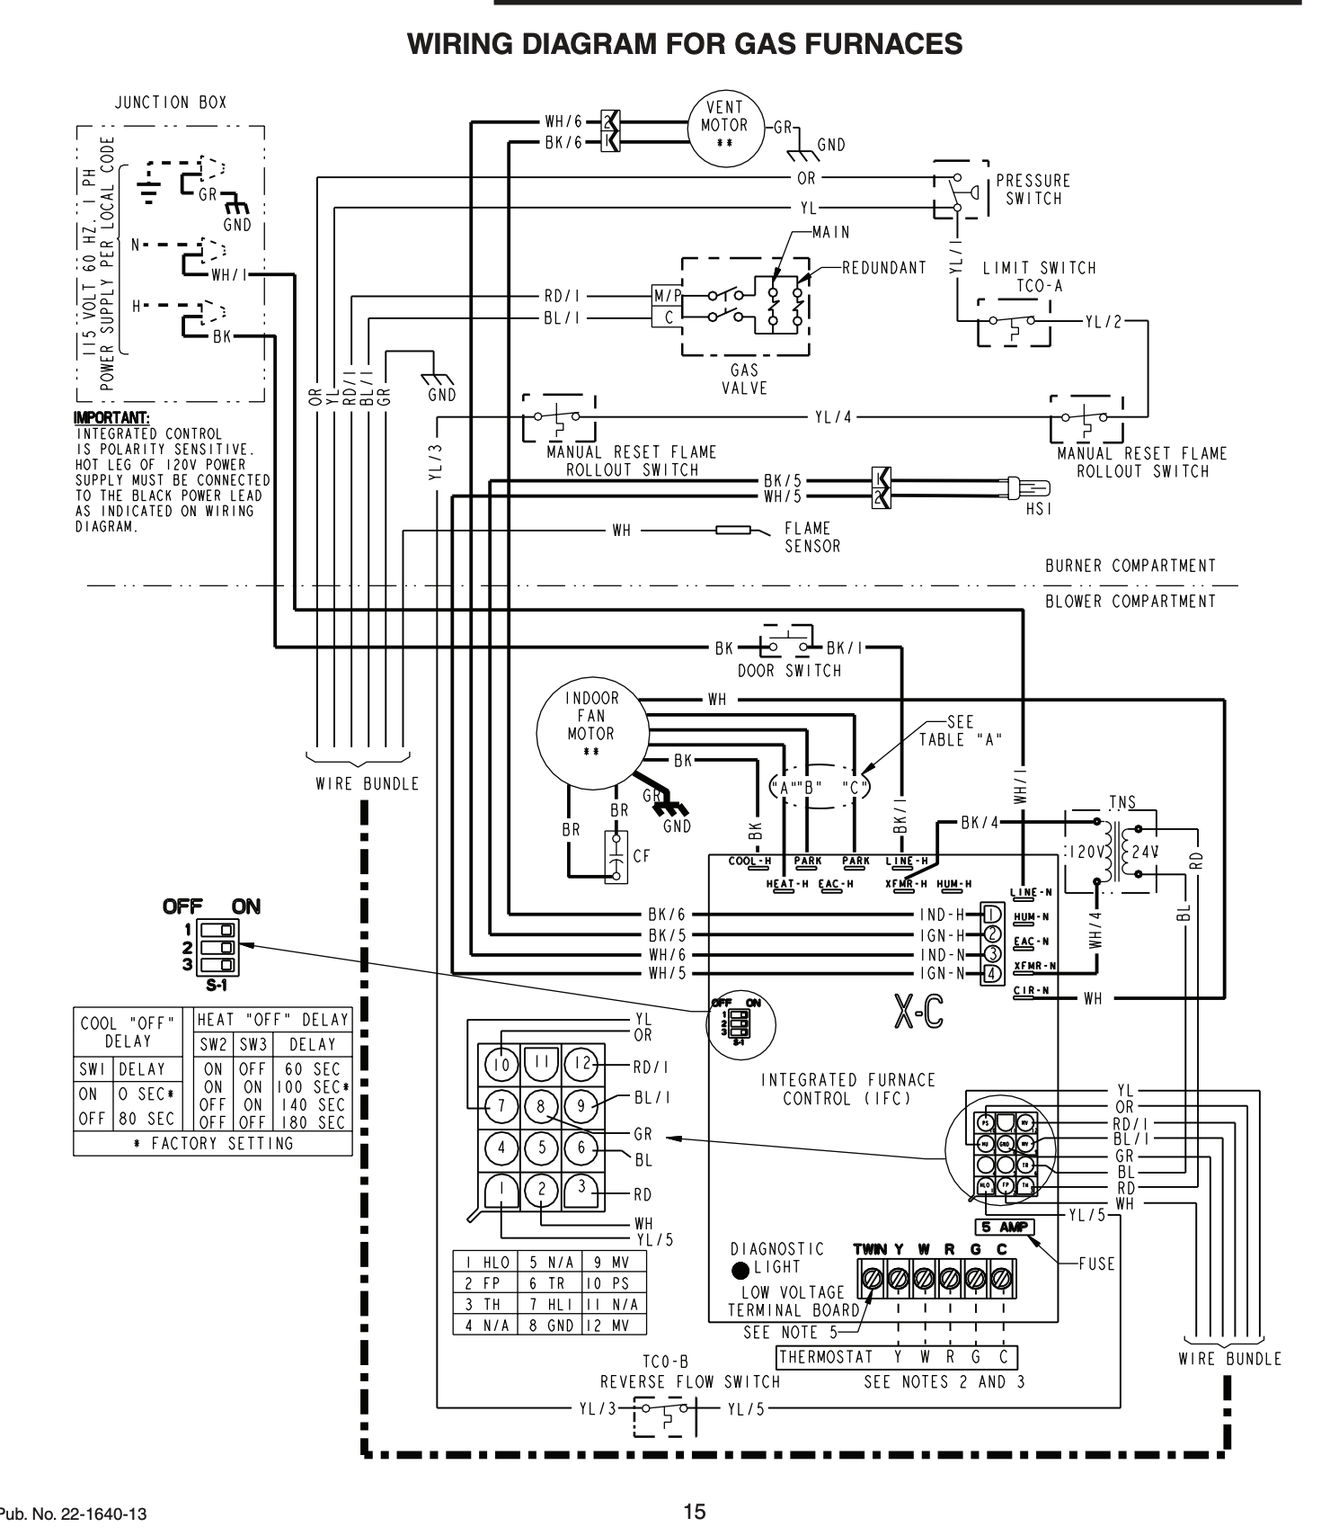 Diagram Ruud Furnace Control Wiring Diagram 80 Full Version Hd Quality Diagram 80 Grafcetdiagram Agorasup Fr